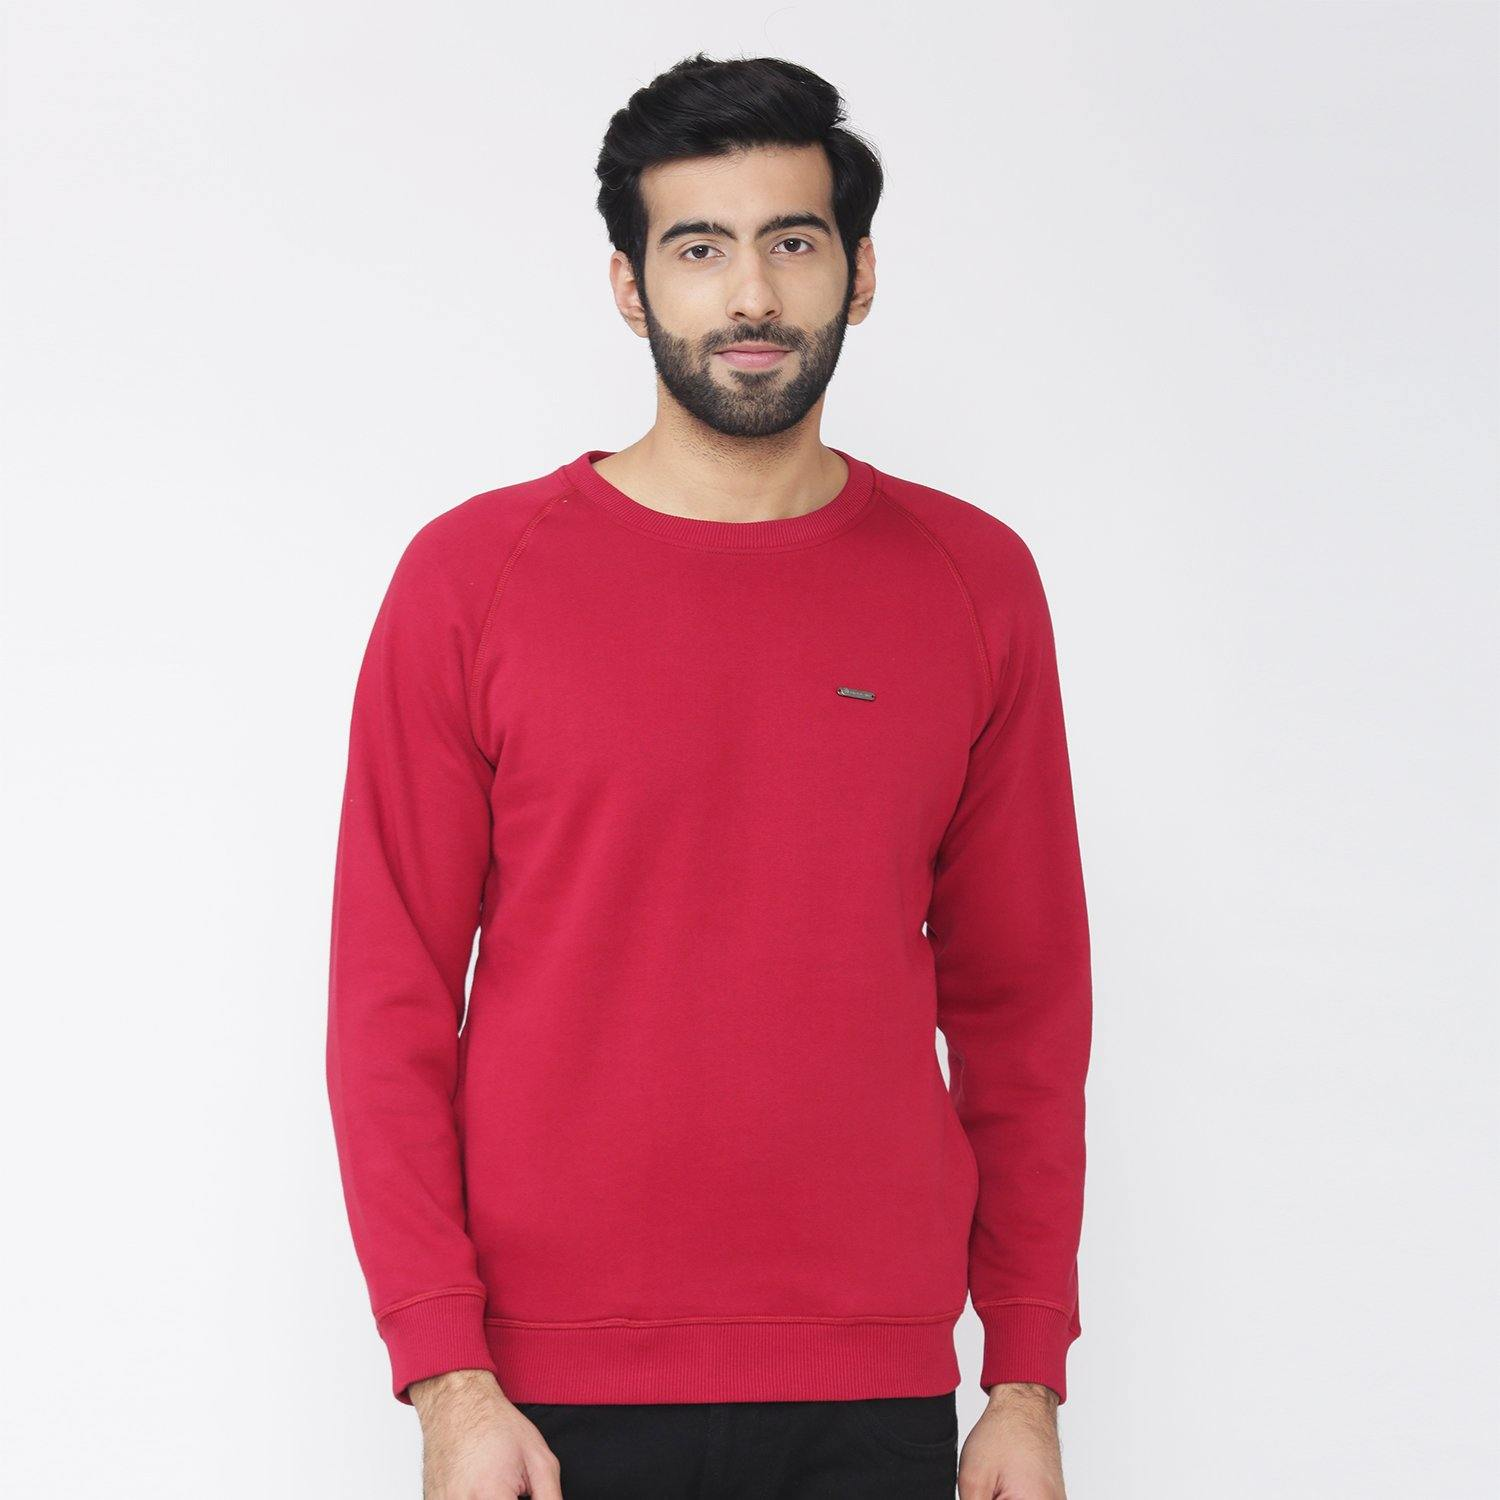 Men's Plain Winter Wear Sweatshirt - Biking Red